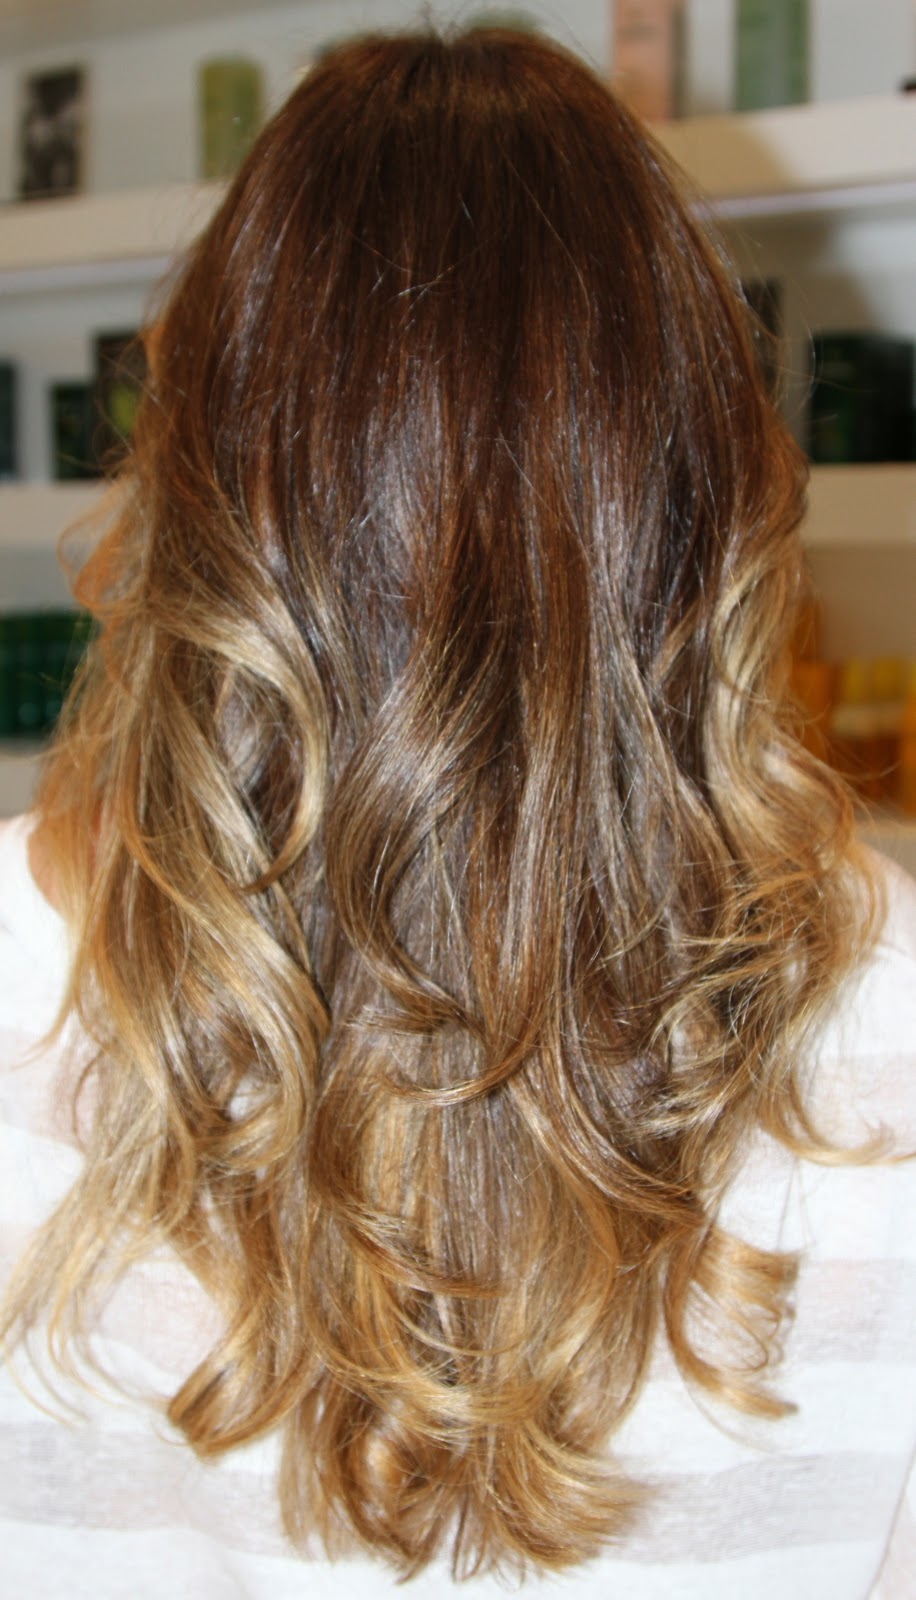 Hair Color by Johnny Ramirez